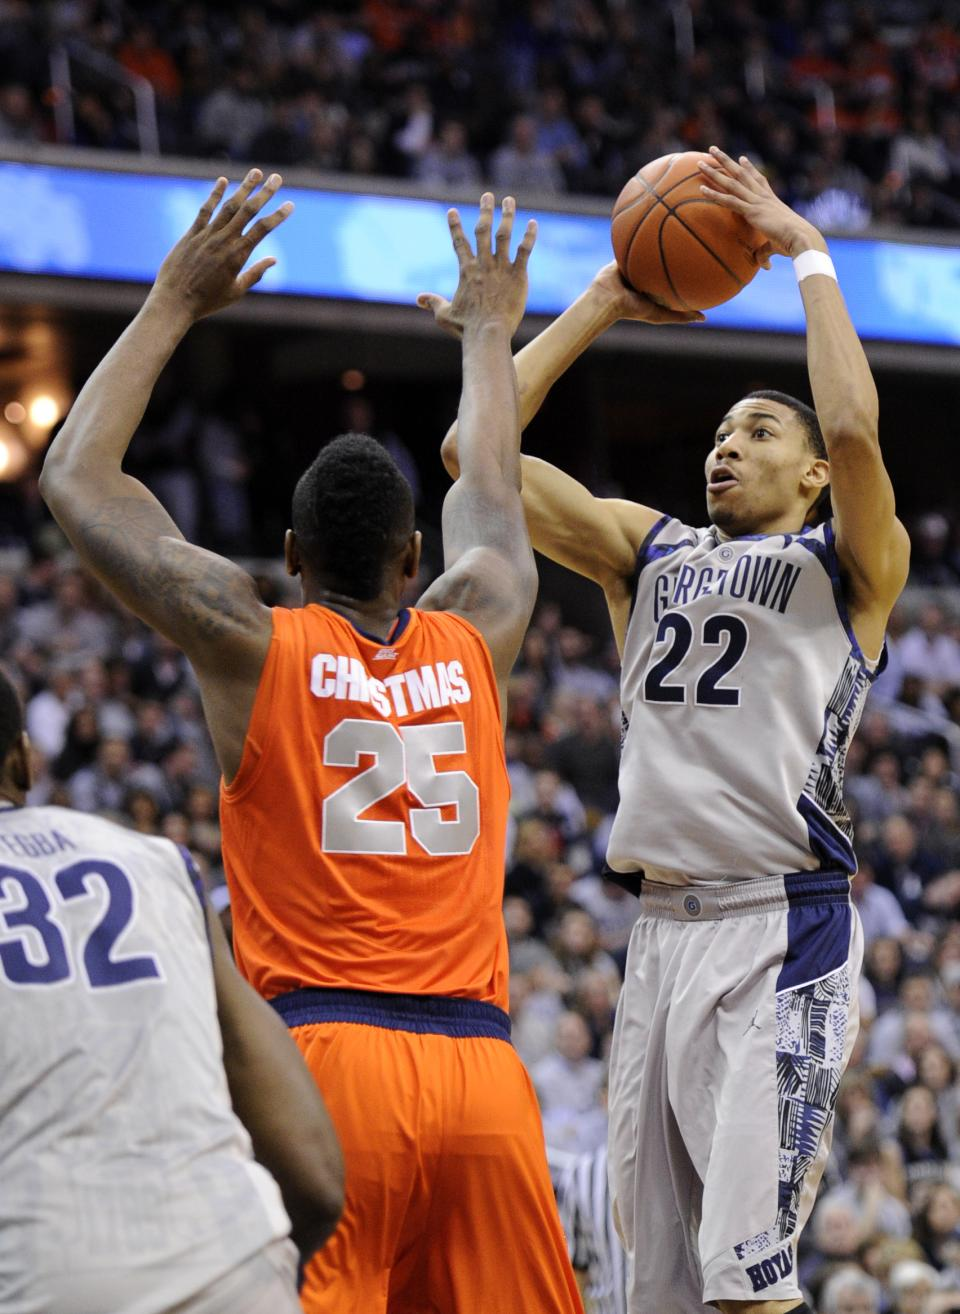 Georgetown forward Otto Porter Jr. (22) takes a shot against Syracuse forward Rakeem Christmas (25) during the second half of an NCAA college basketball game, Saturday, March 9, 2013, in Washington. Georgetown won 61-39. (AP Photo/Nick Wass)